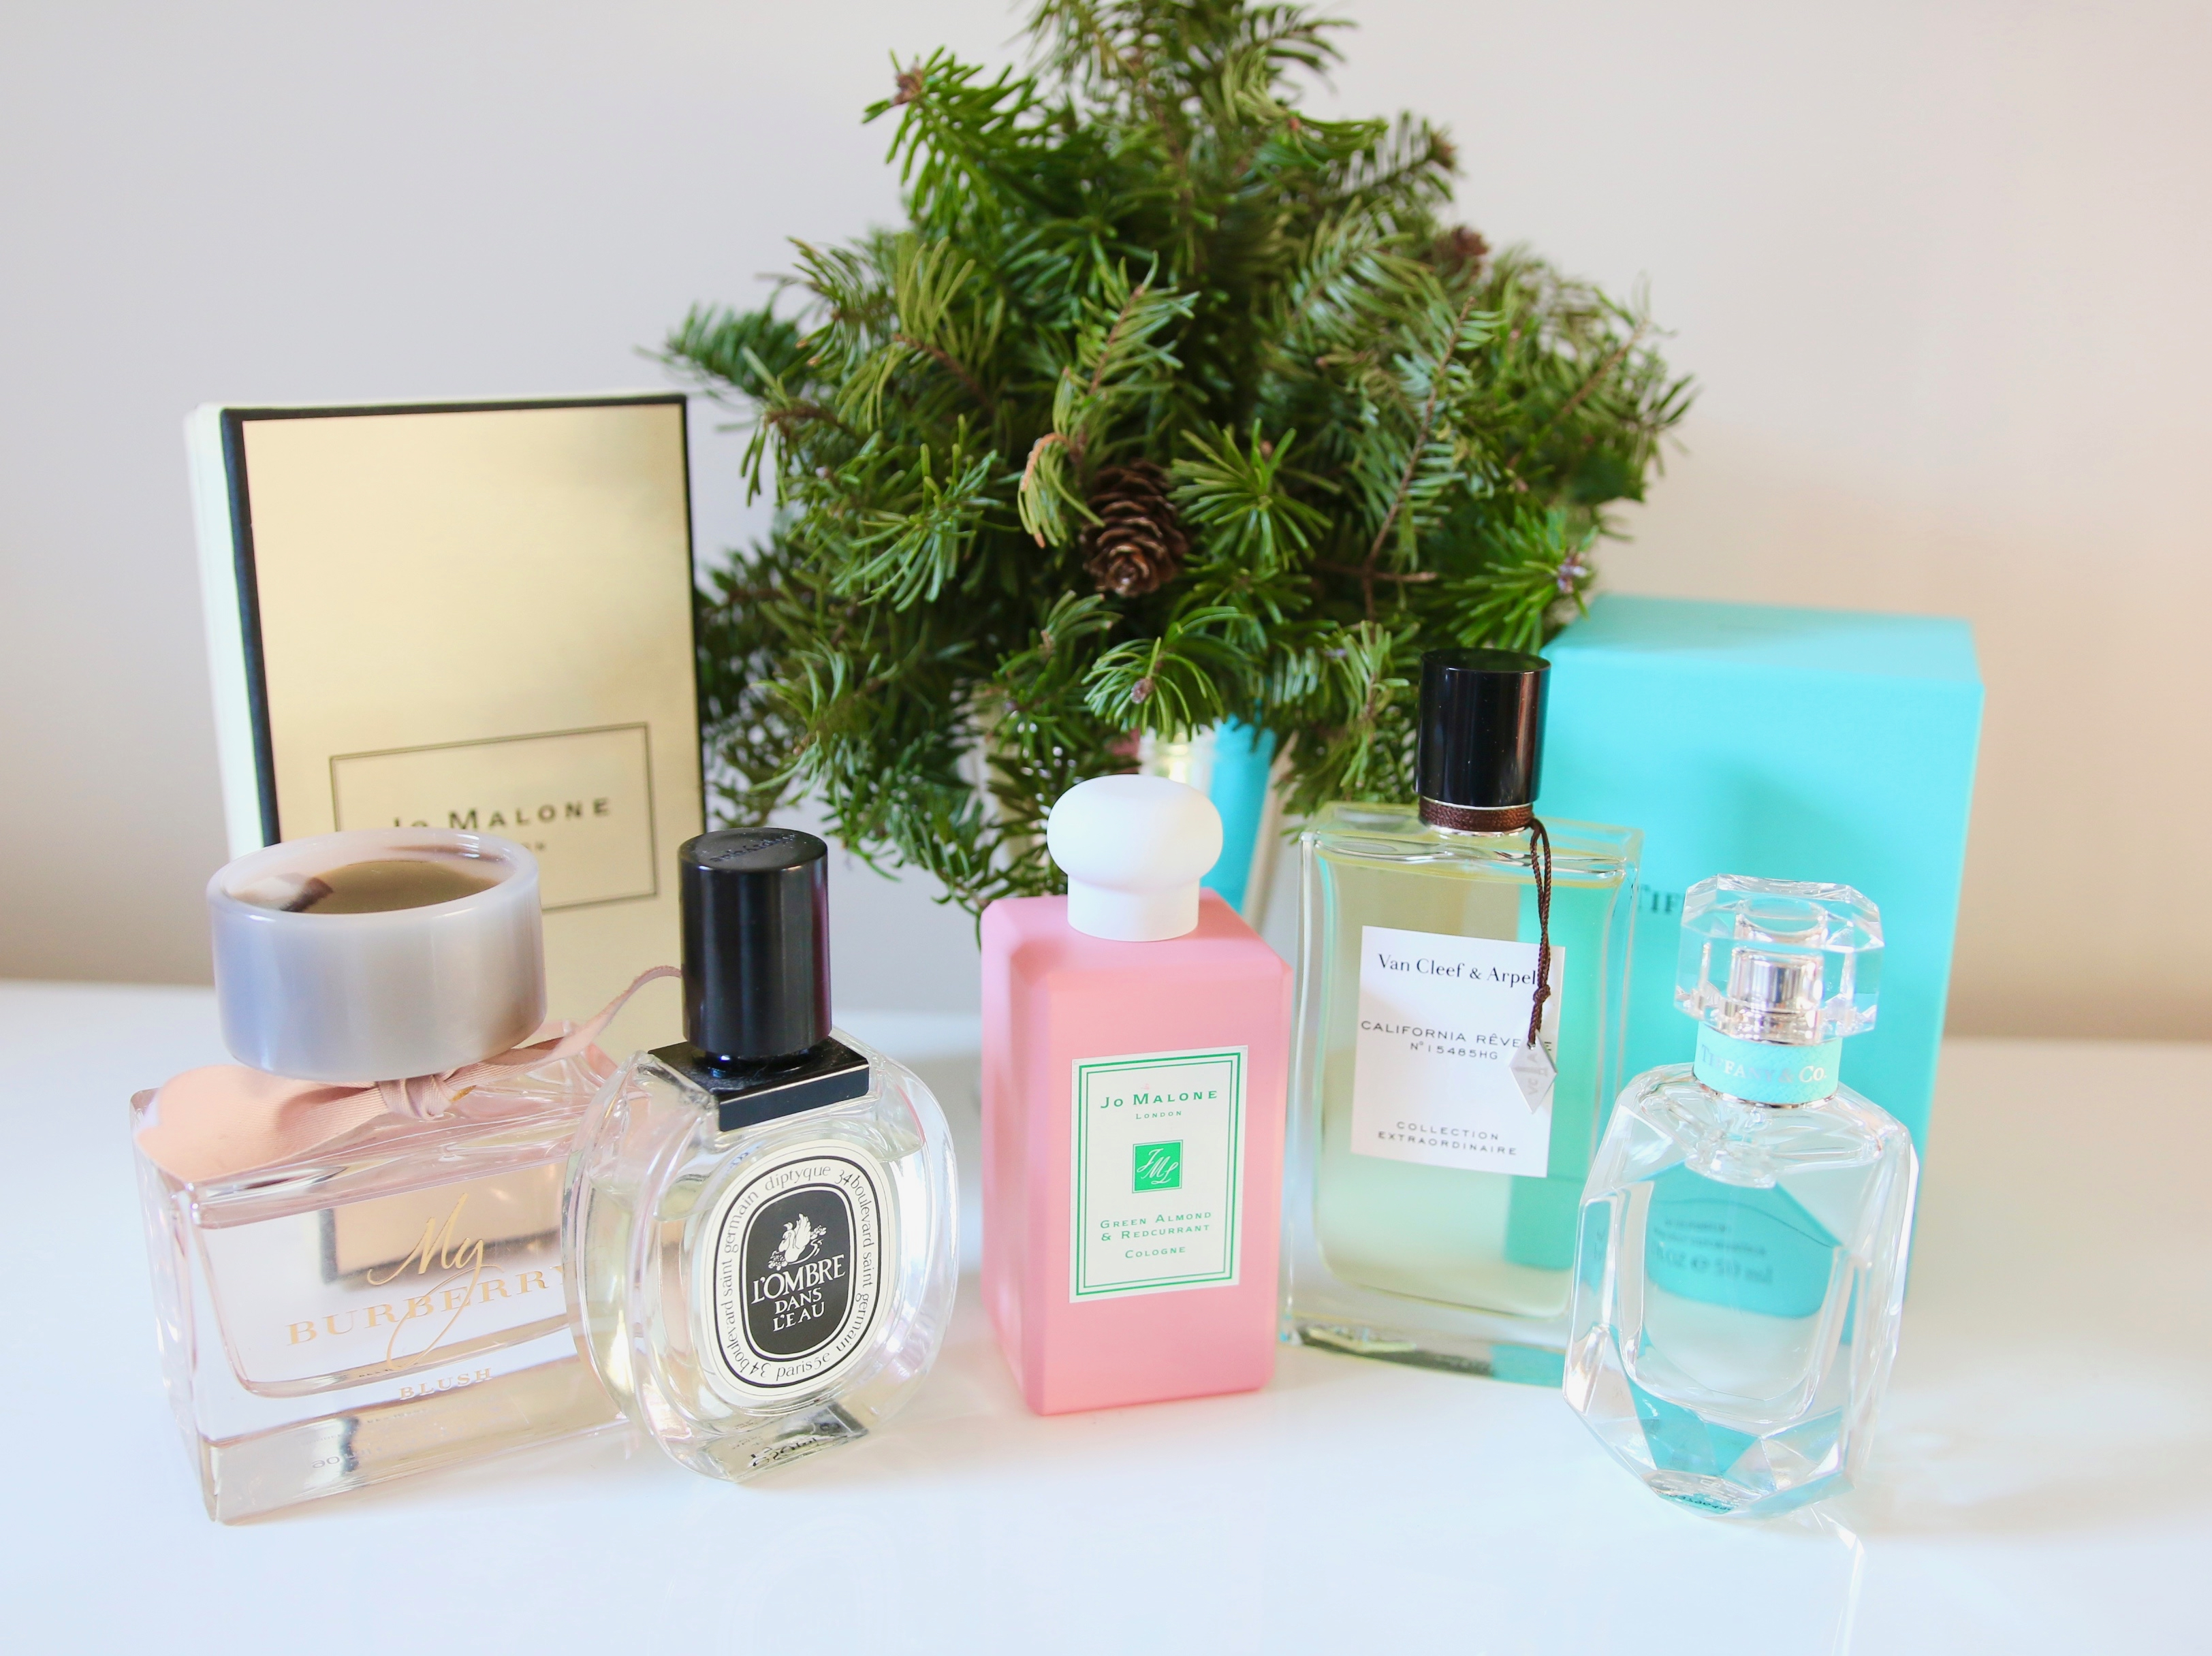 fragrances luxueuses Diptyque Jo Malone Burberry Tiffany Van Cleef & Arpels